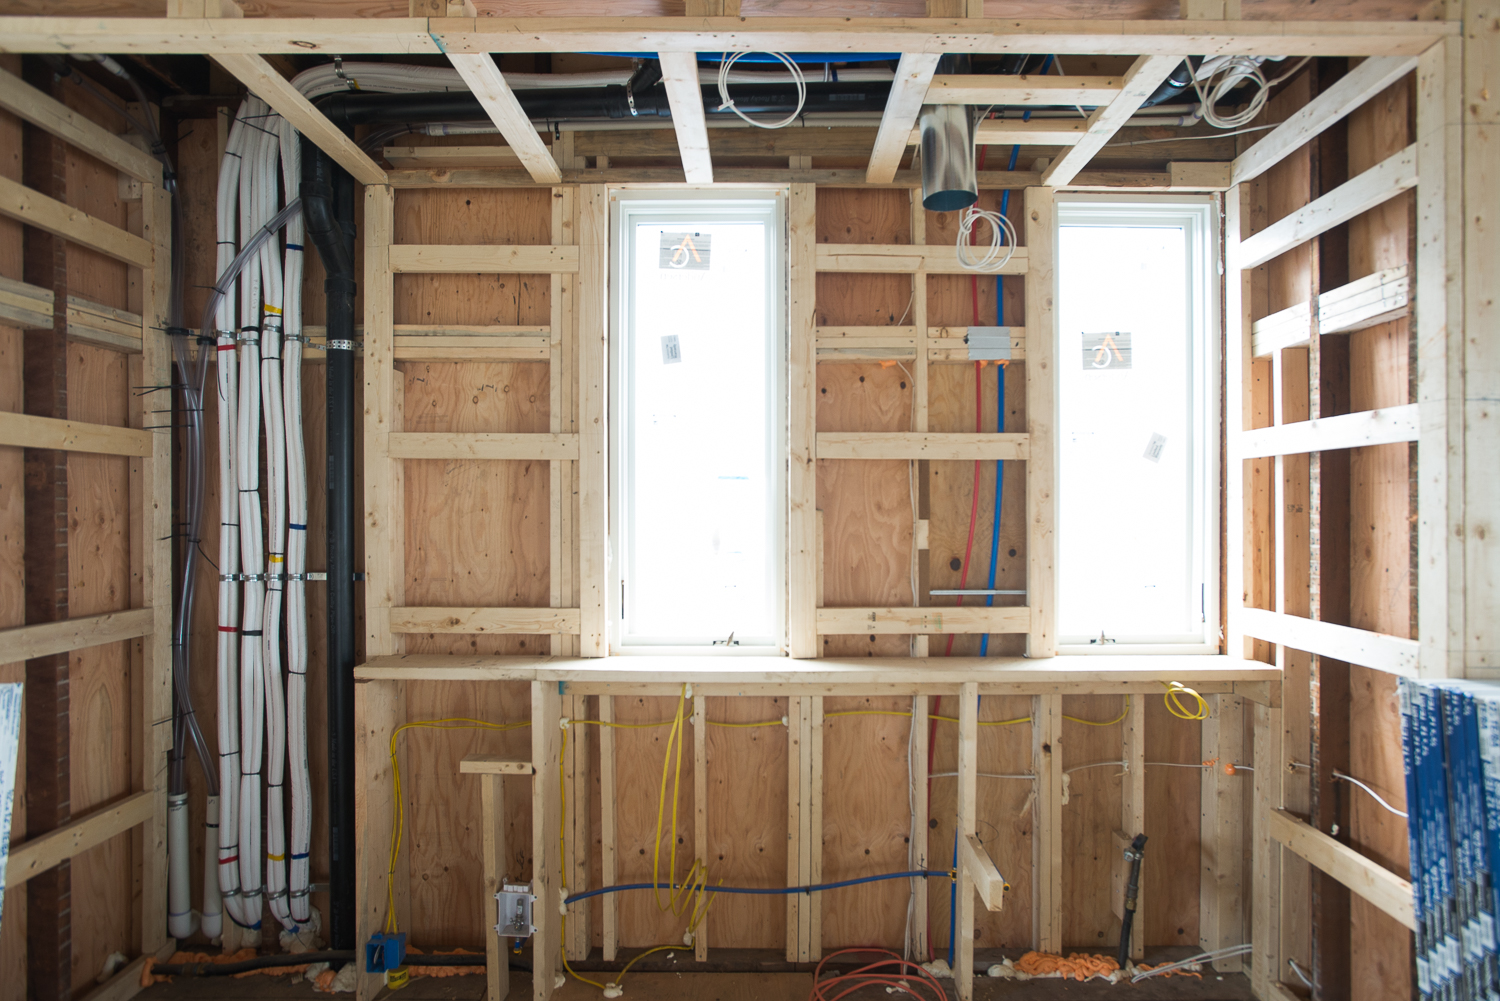 Comprehensive remodels from floor to ceiling